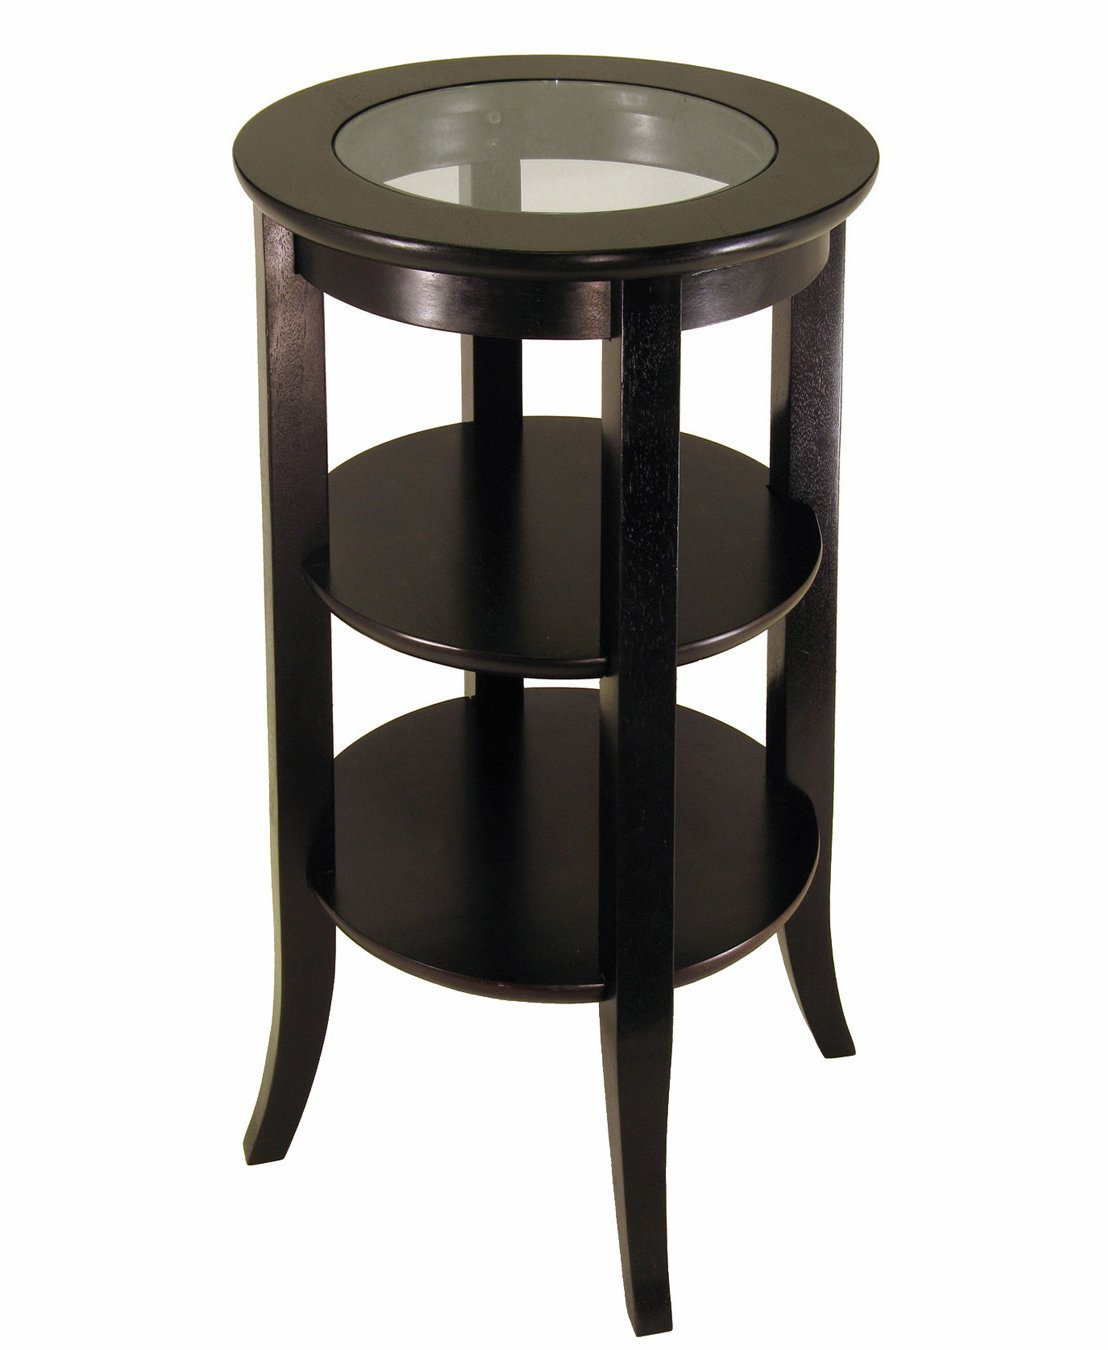 small patio accent tables urban home designing trends side for frenchi furniture wood round table remodel living room spaces ikea black architecture telano info metal dining